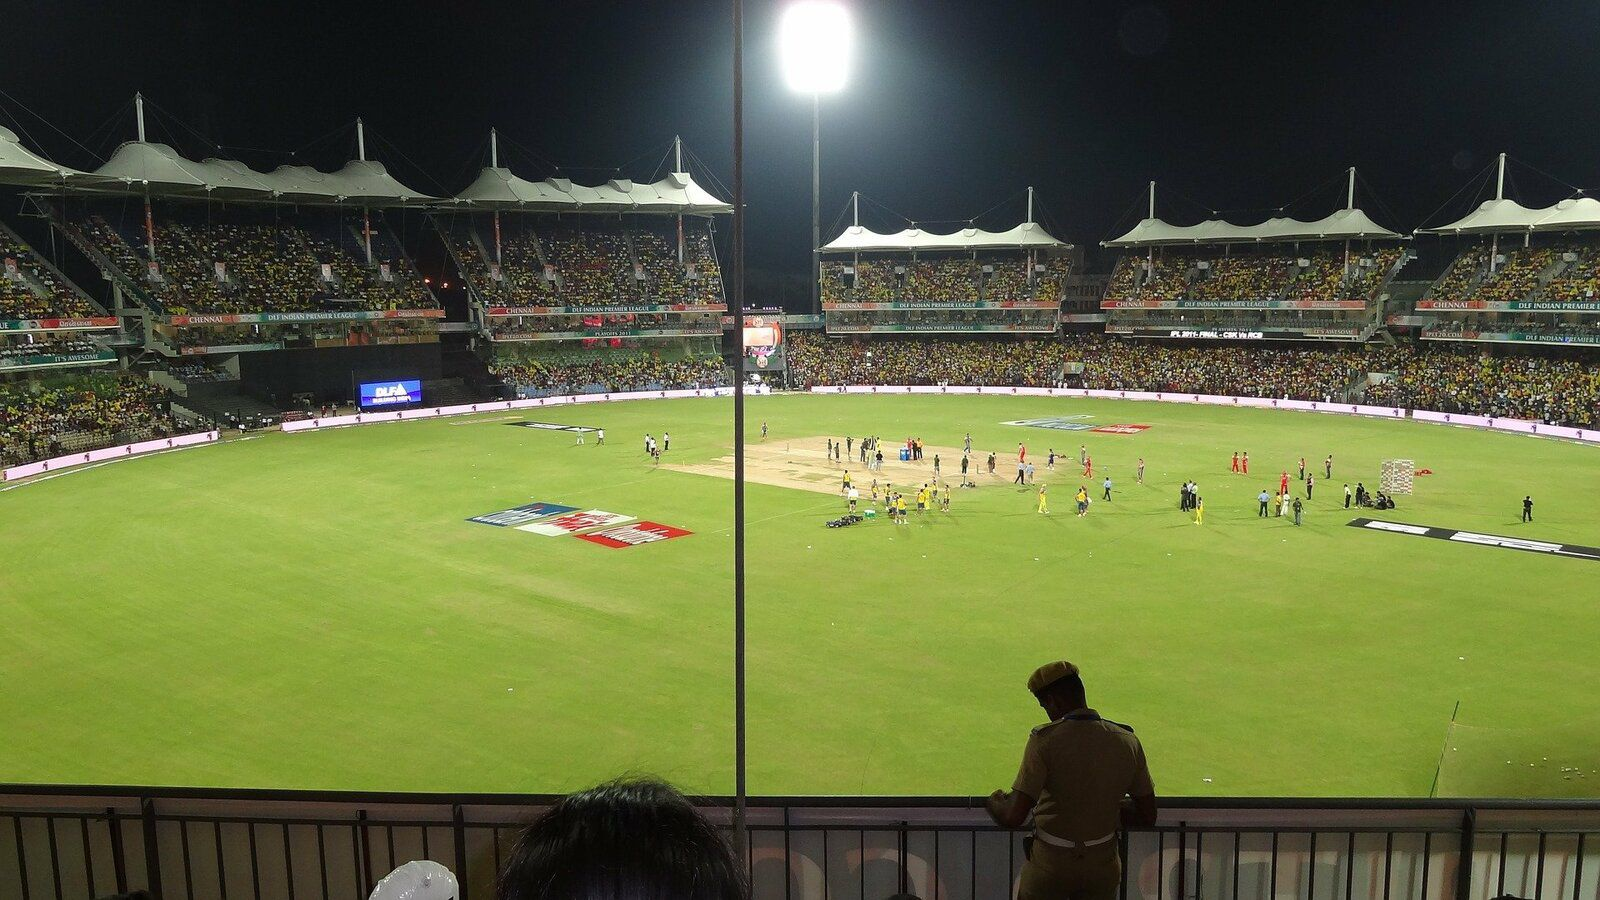 How Can I Make More Money With Cricket Betting?